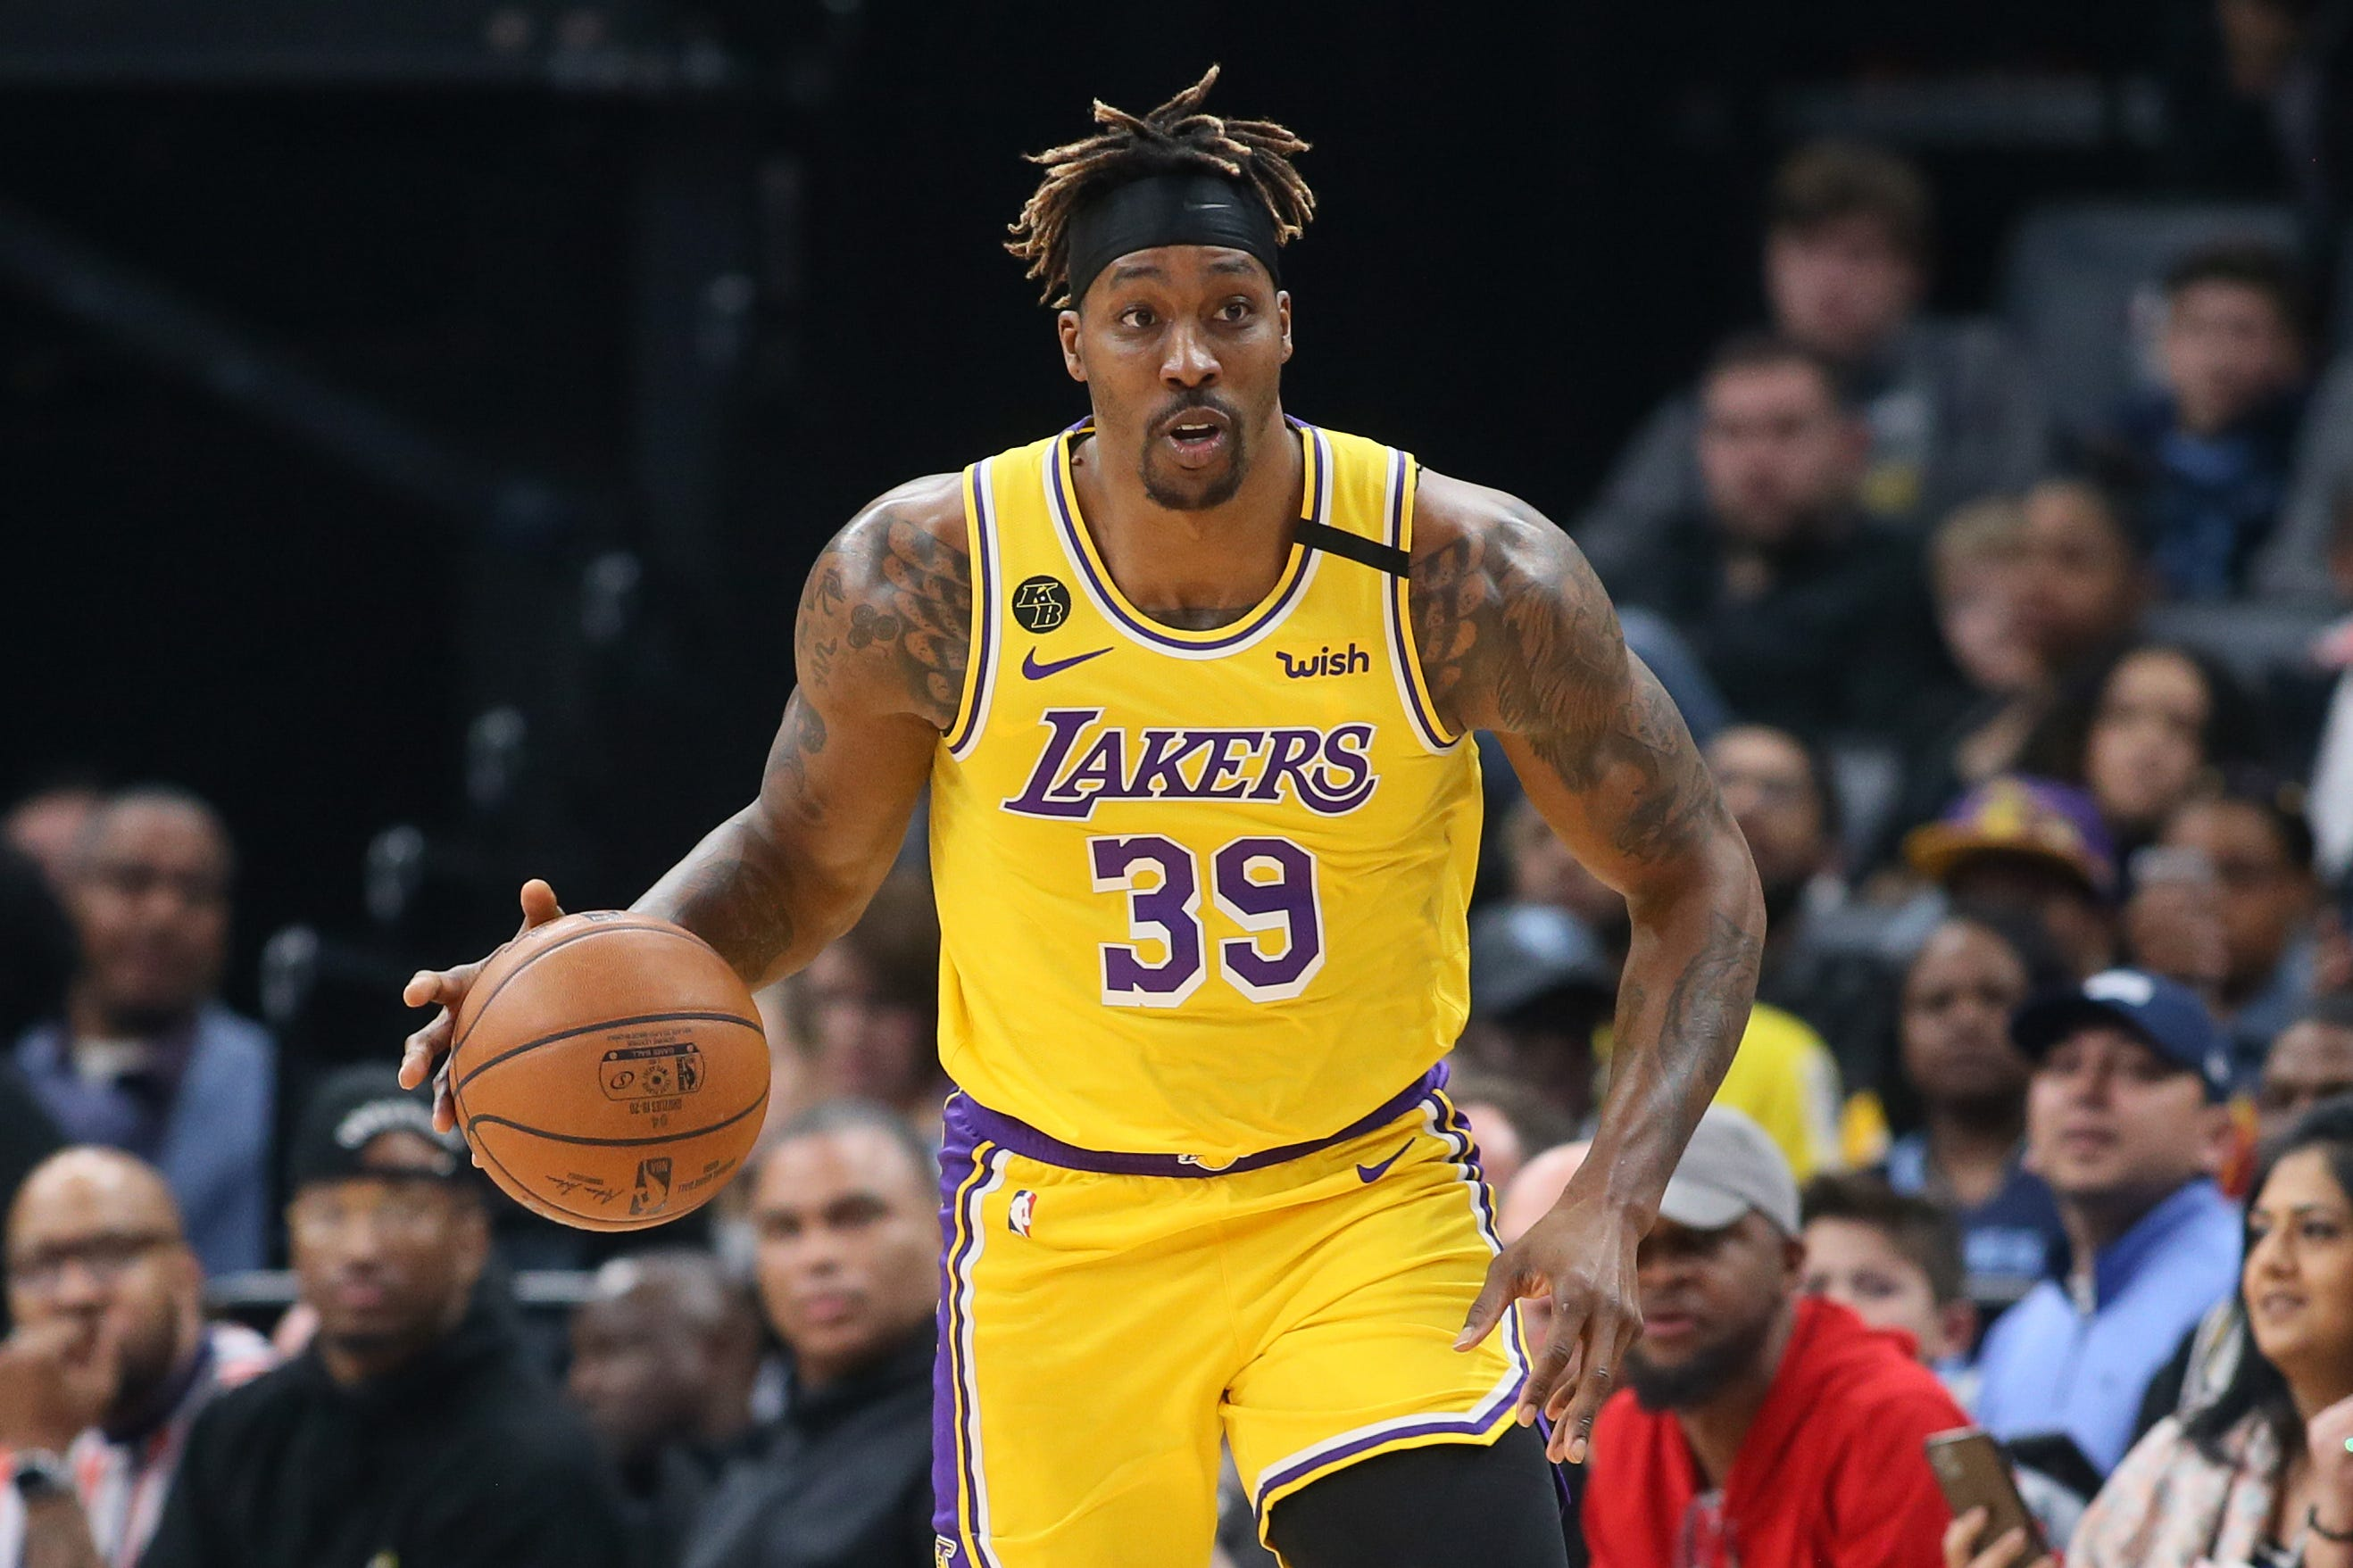 Lakers' Dwight Howard looks for joy during rough time